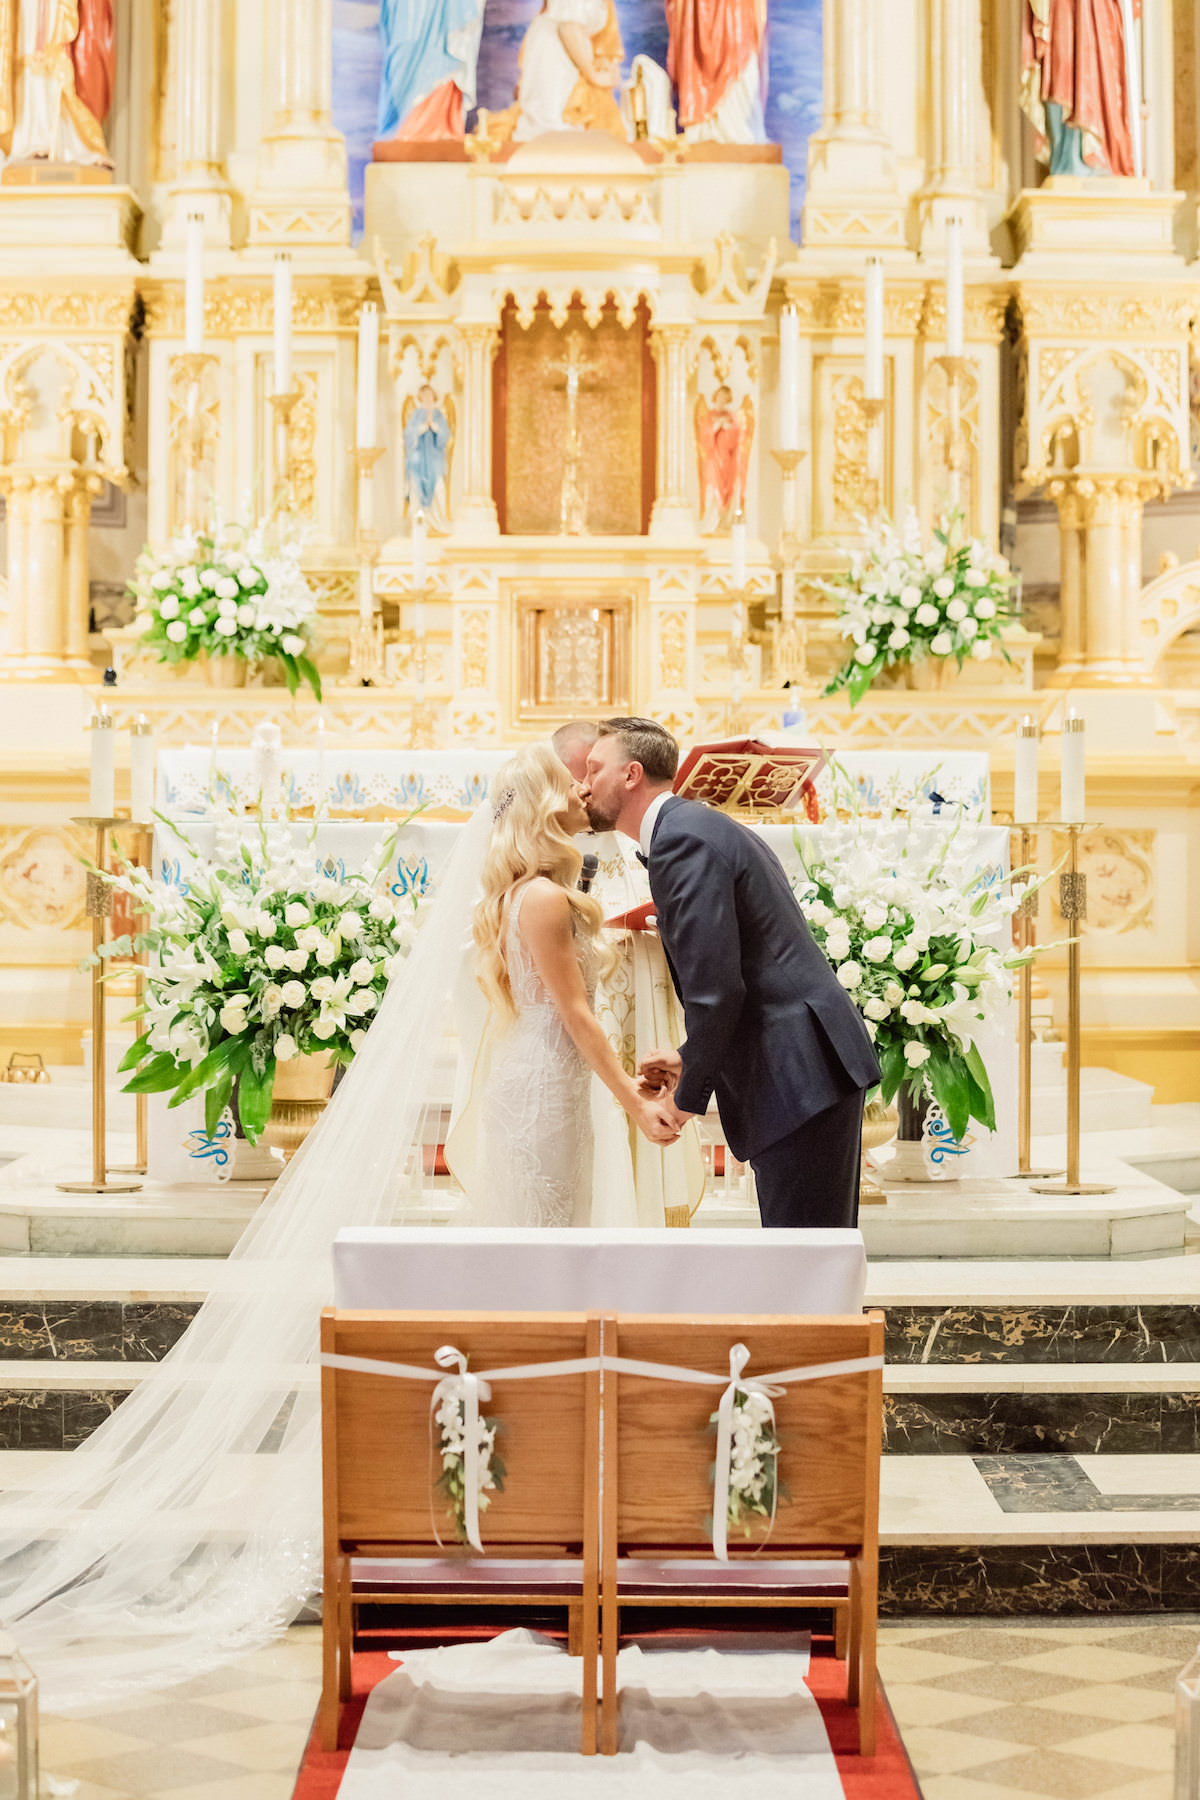 Church wedding ceremony kiss -Photography: Charming Images